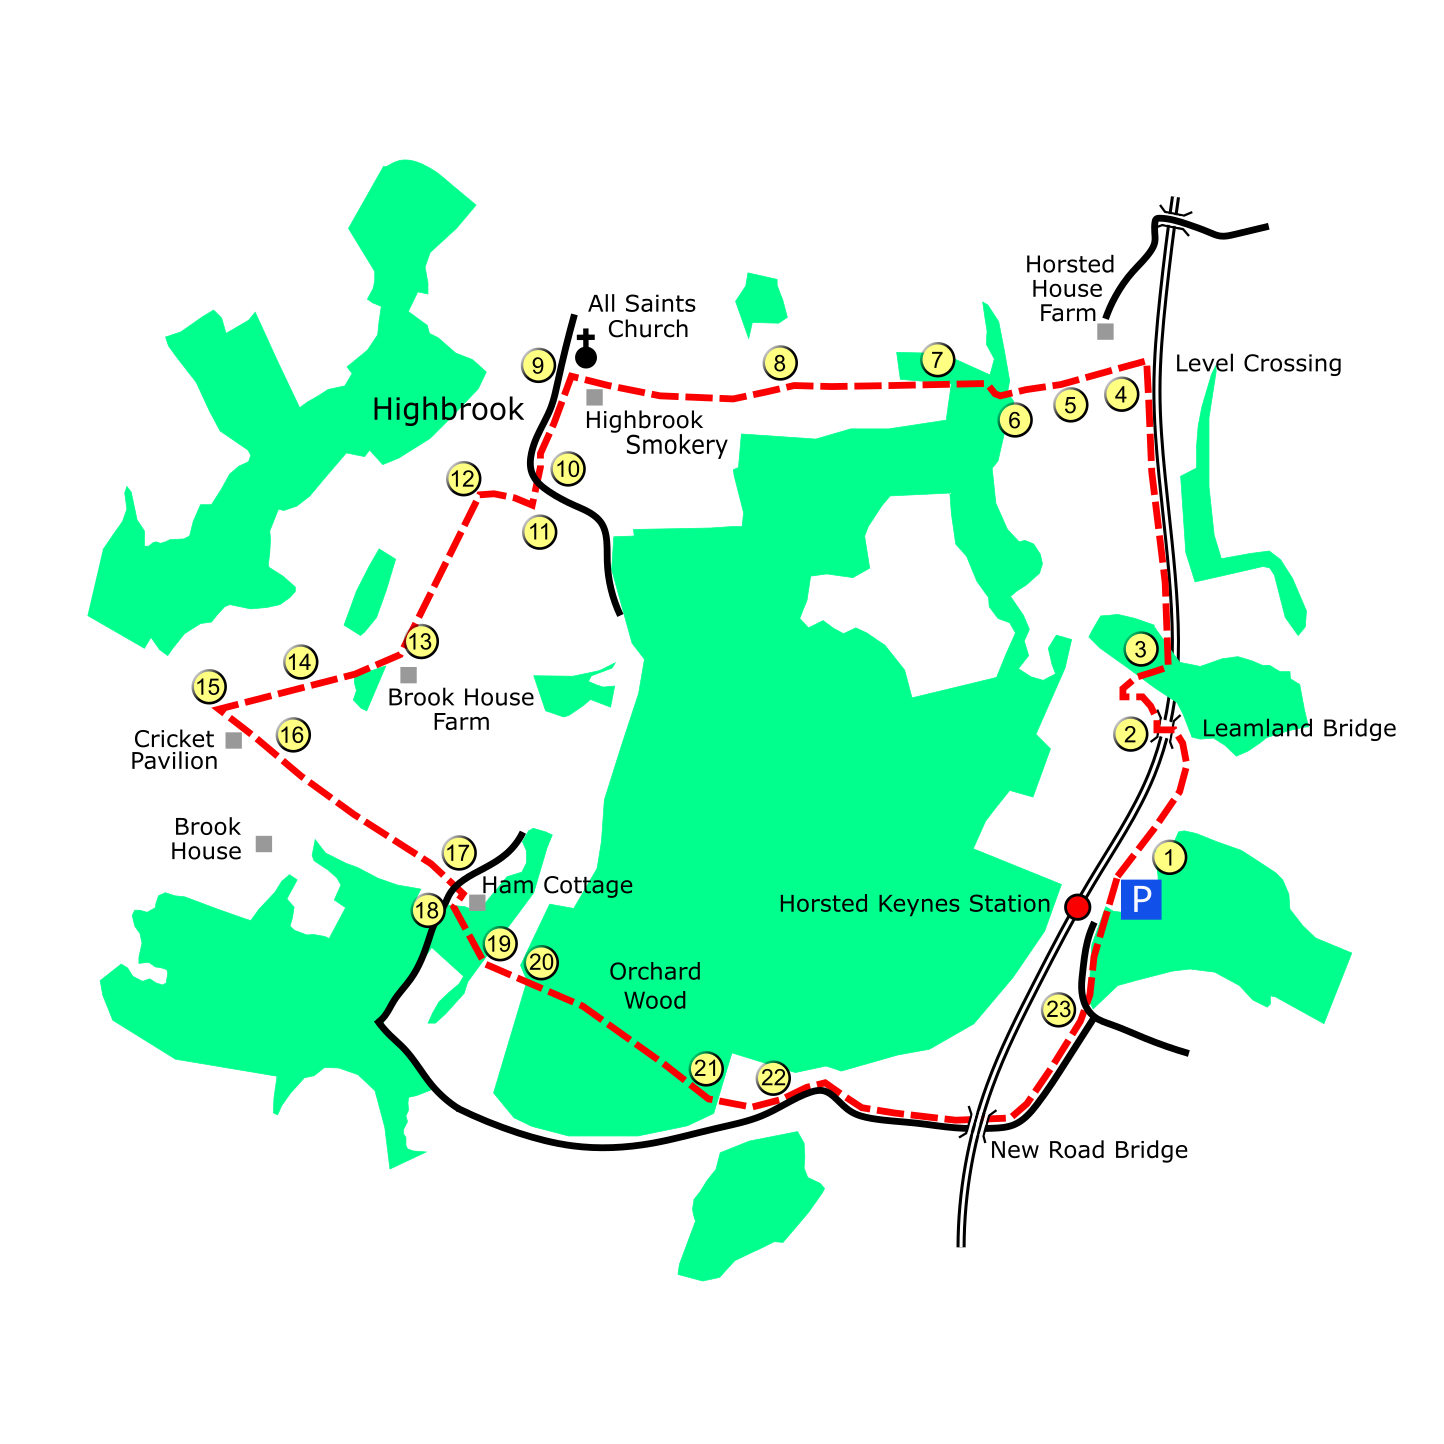 Horsted Keynes Station route map